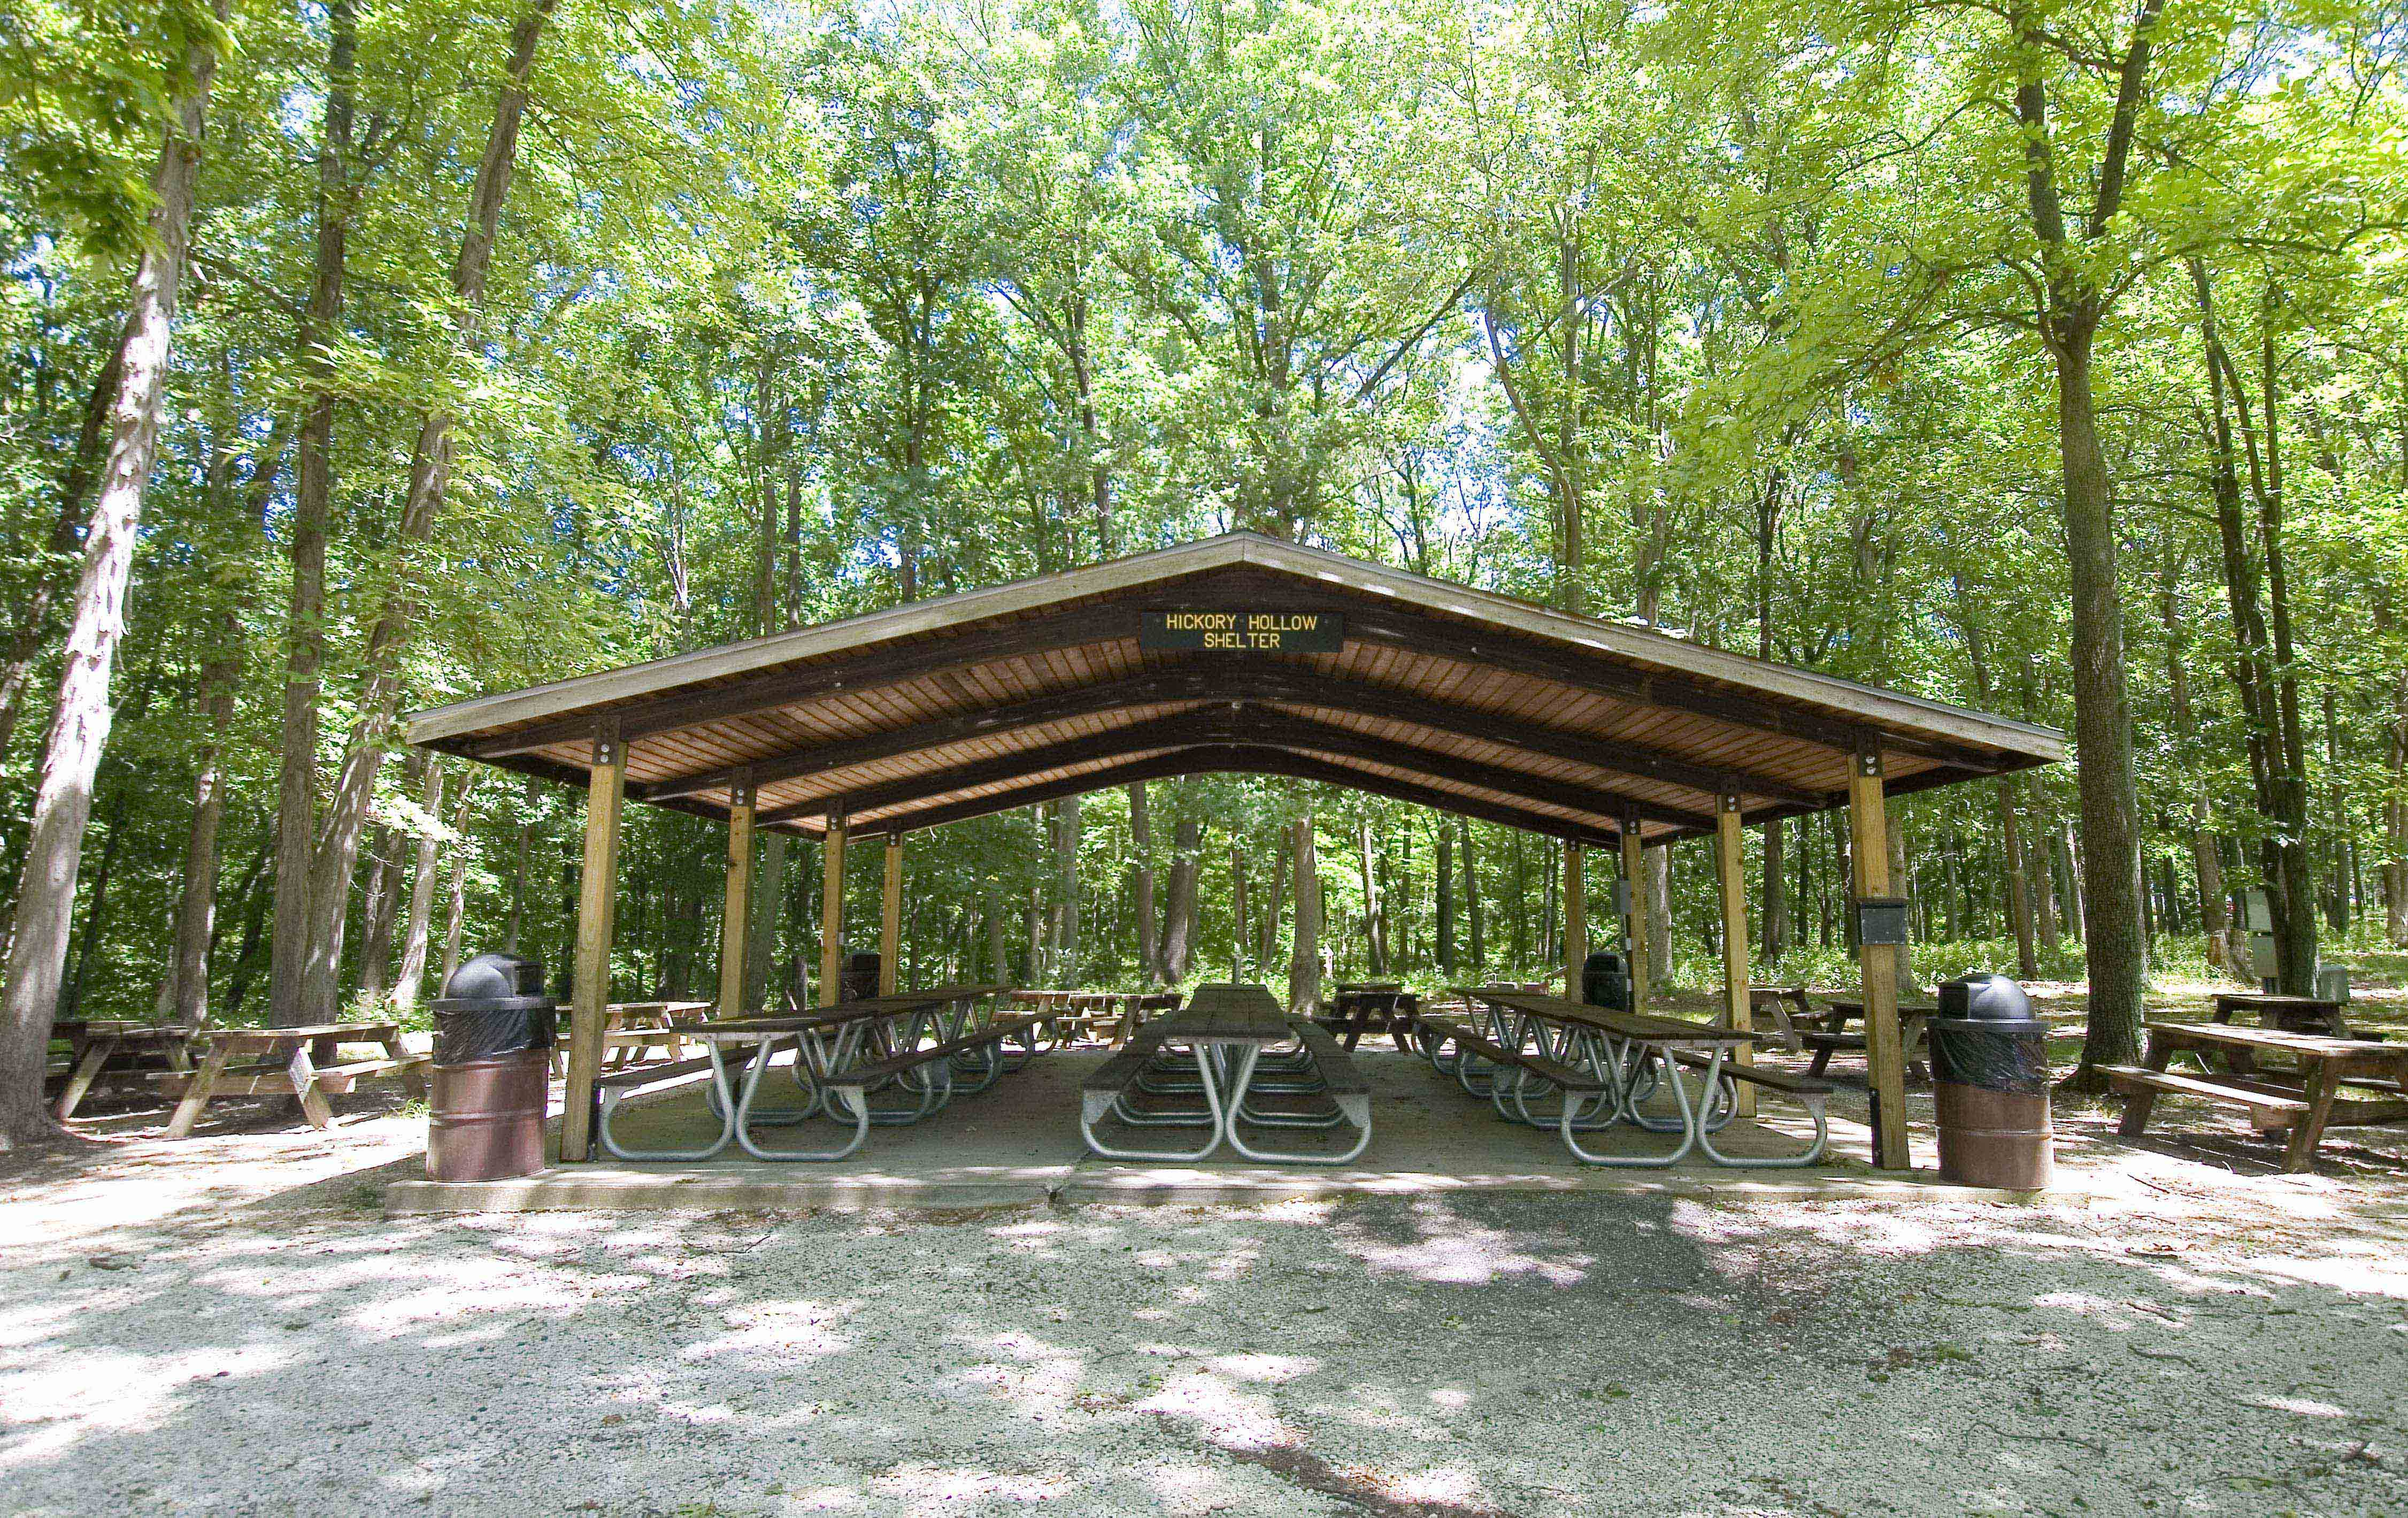 Hickory Hollow Shelter